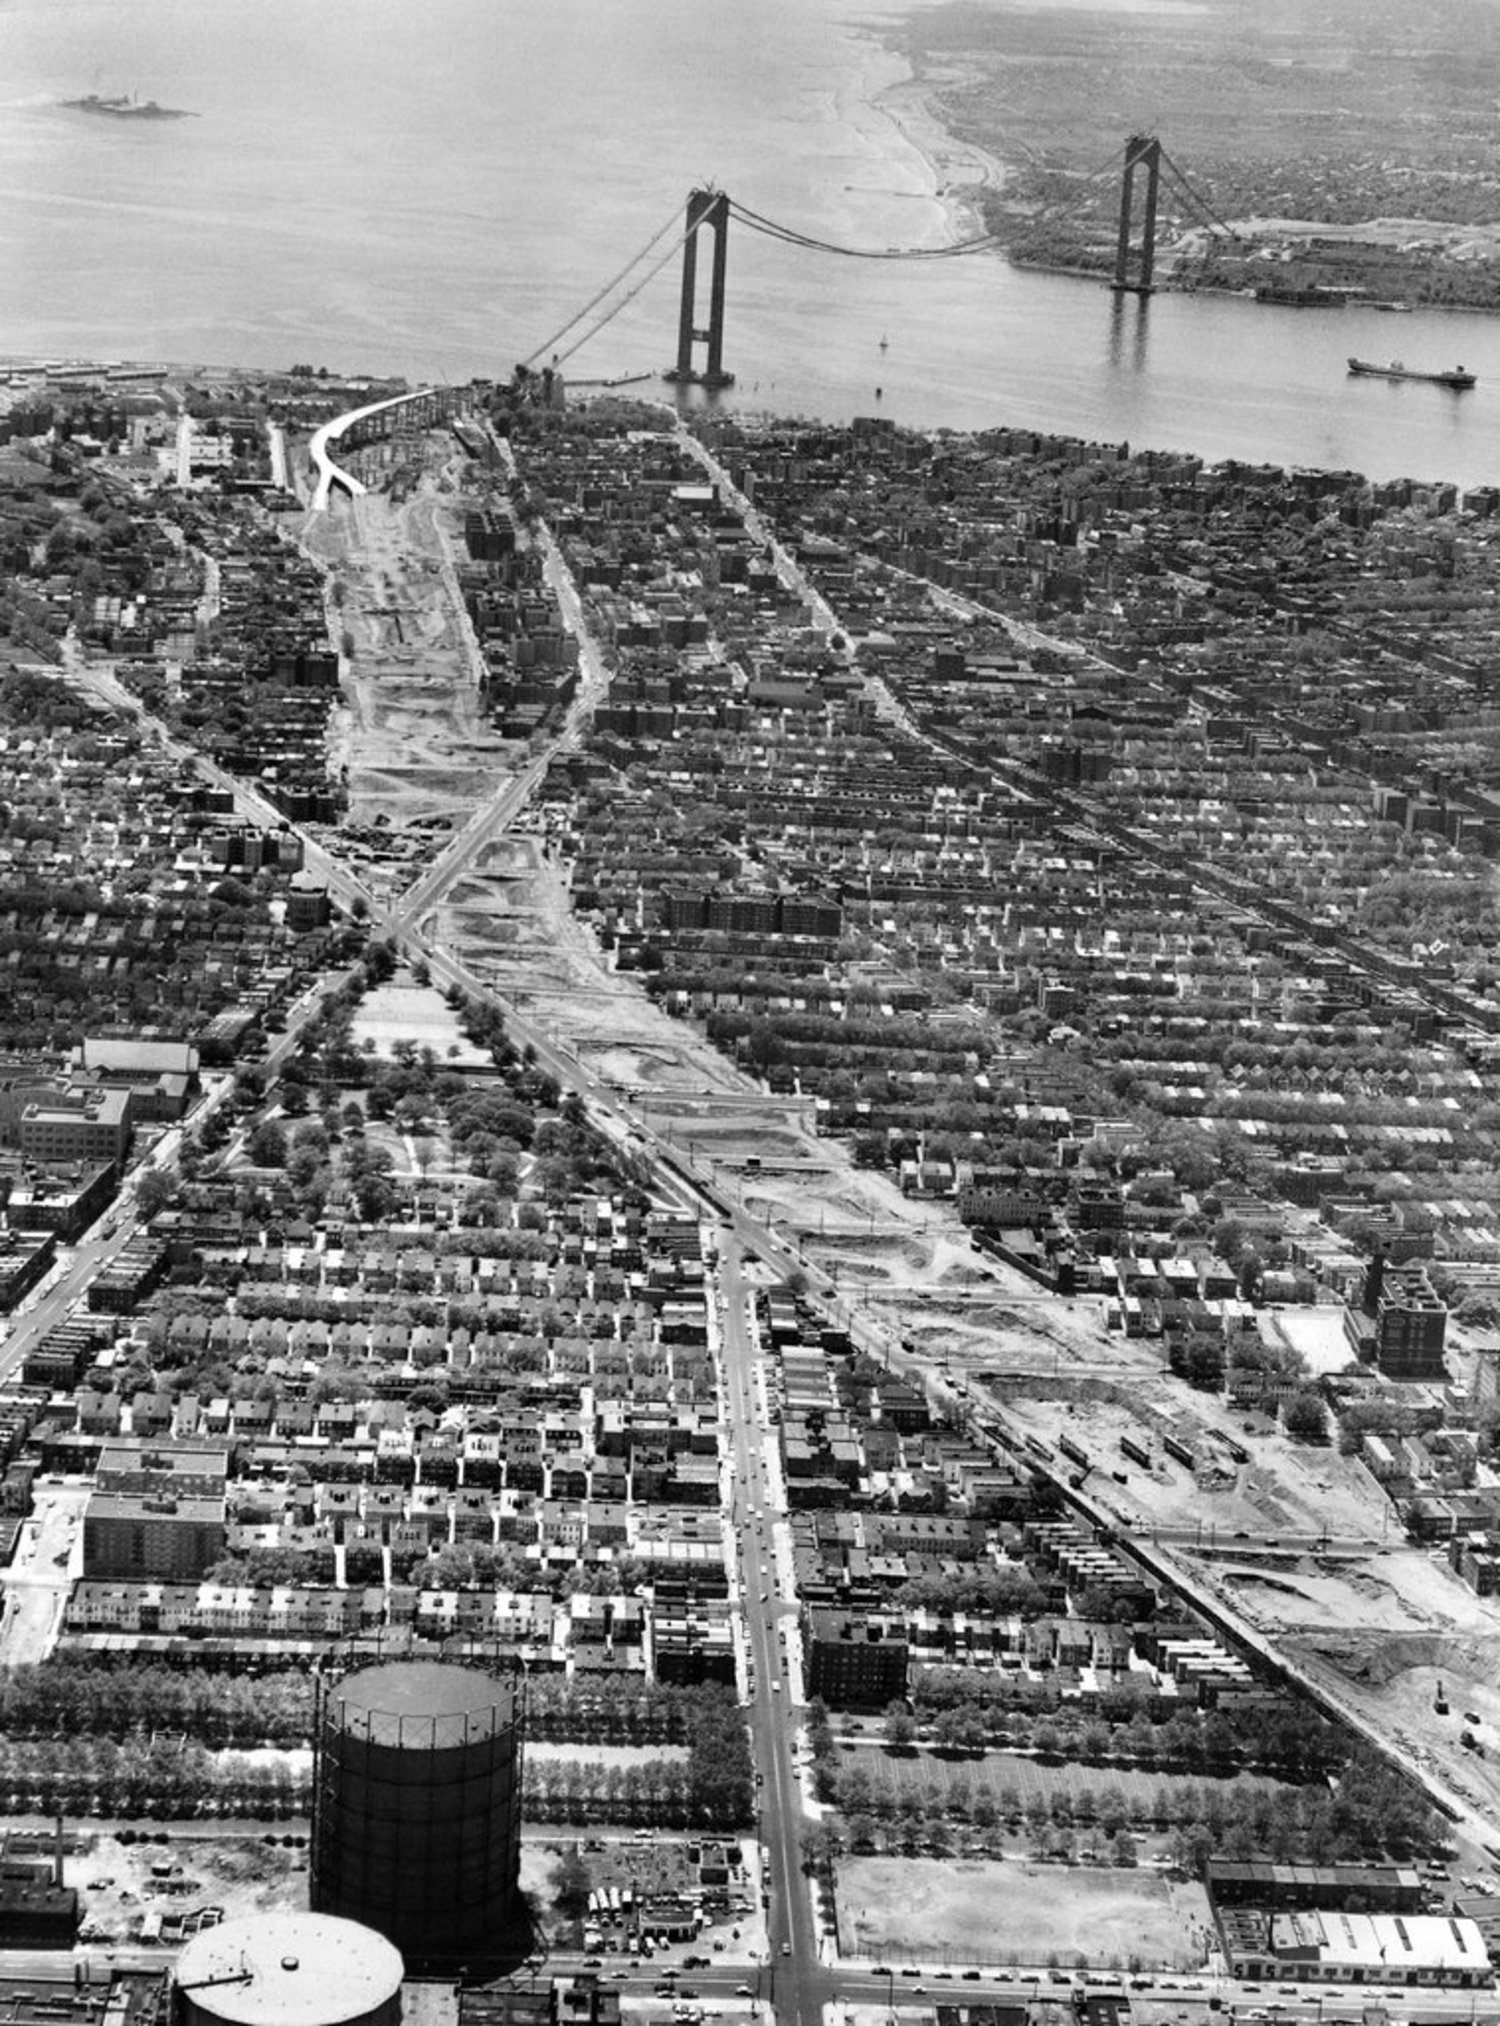 "May 17, 1963: A view of sleepy Staten Island and ""The Bridge — the $325,000,000 Verrazano-Narrows span, which will join Fort Wadsworth on the island with Fort Hamilton in Brooklyn when it is completed."" The booming growth of the island chagrined some, who ""gloomily forecast intolerable overcrowding of schools, stores, living space and roads. They are less sanguine than the enthusiasts about the solution of such problems as lack of sewers, of final mapping and paving of streets and of 'City Hall red tape' that discourages prospective industrial development."""